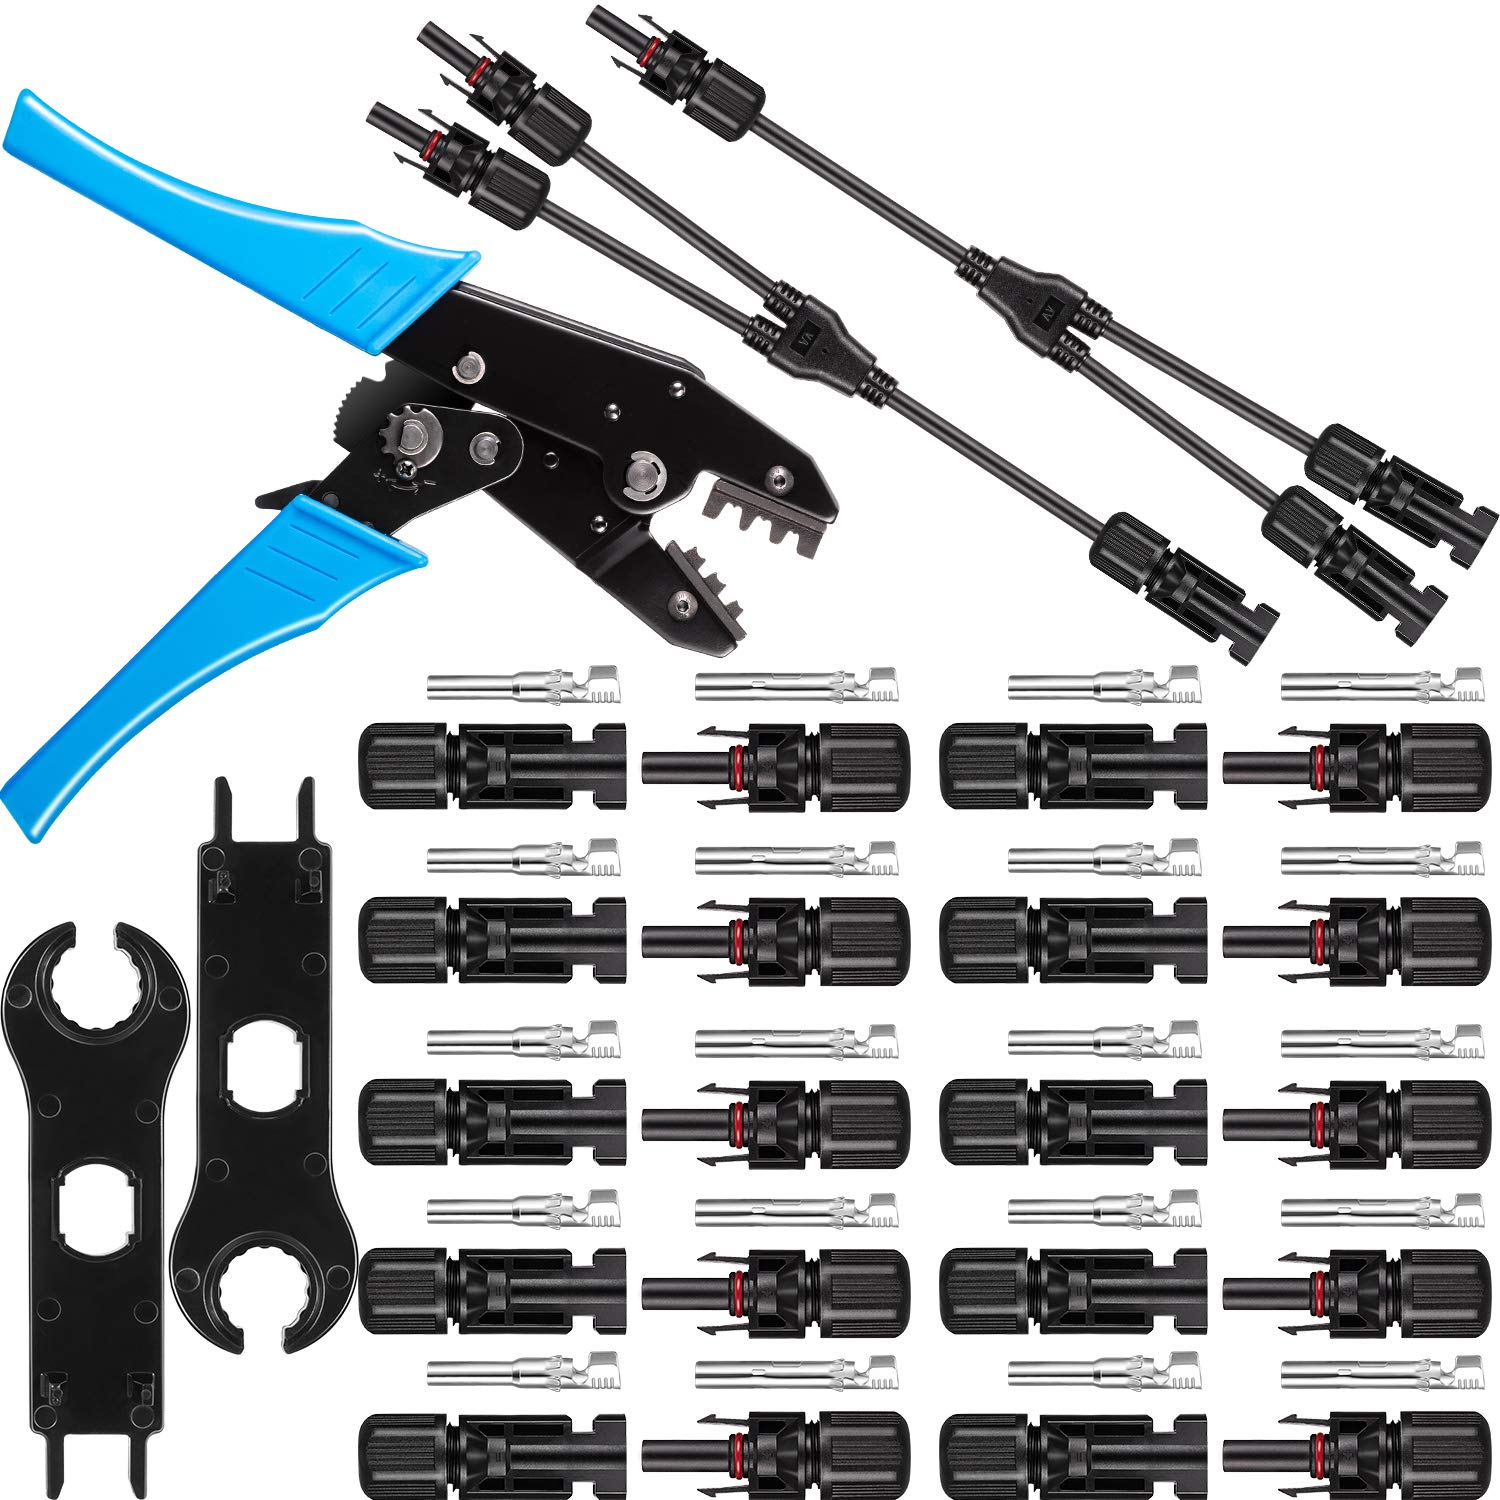 Solar Panel Tools Kit Assembly Including 10 Pairs Female and Male Connectors for MC4, 2 Pieces Spanner for MC4, Y Branch Connector and Solar Crimping Tool for MC4(Style B) by Pelopy